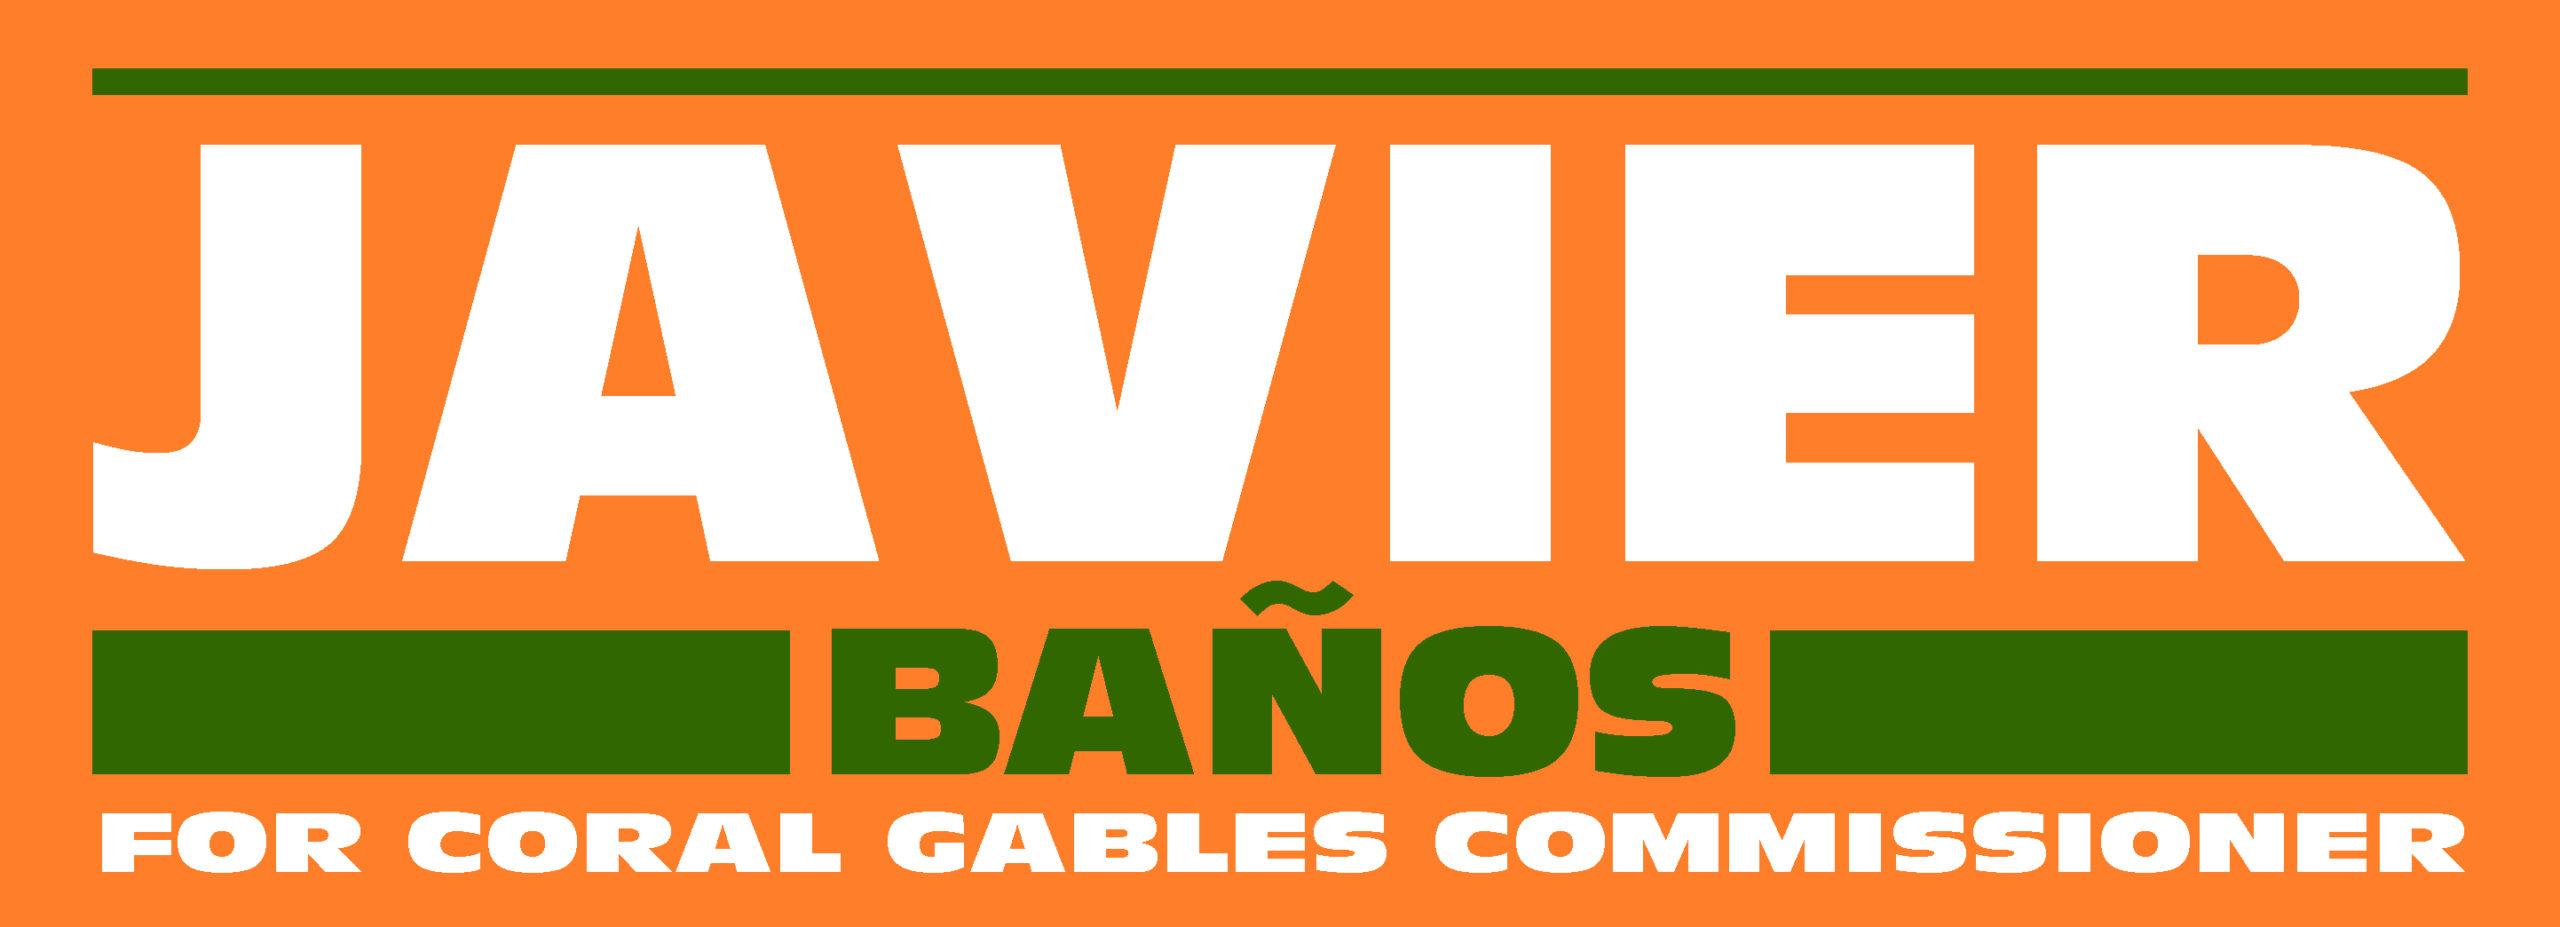 Javier Banos for Coral Gables Commission